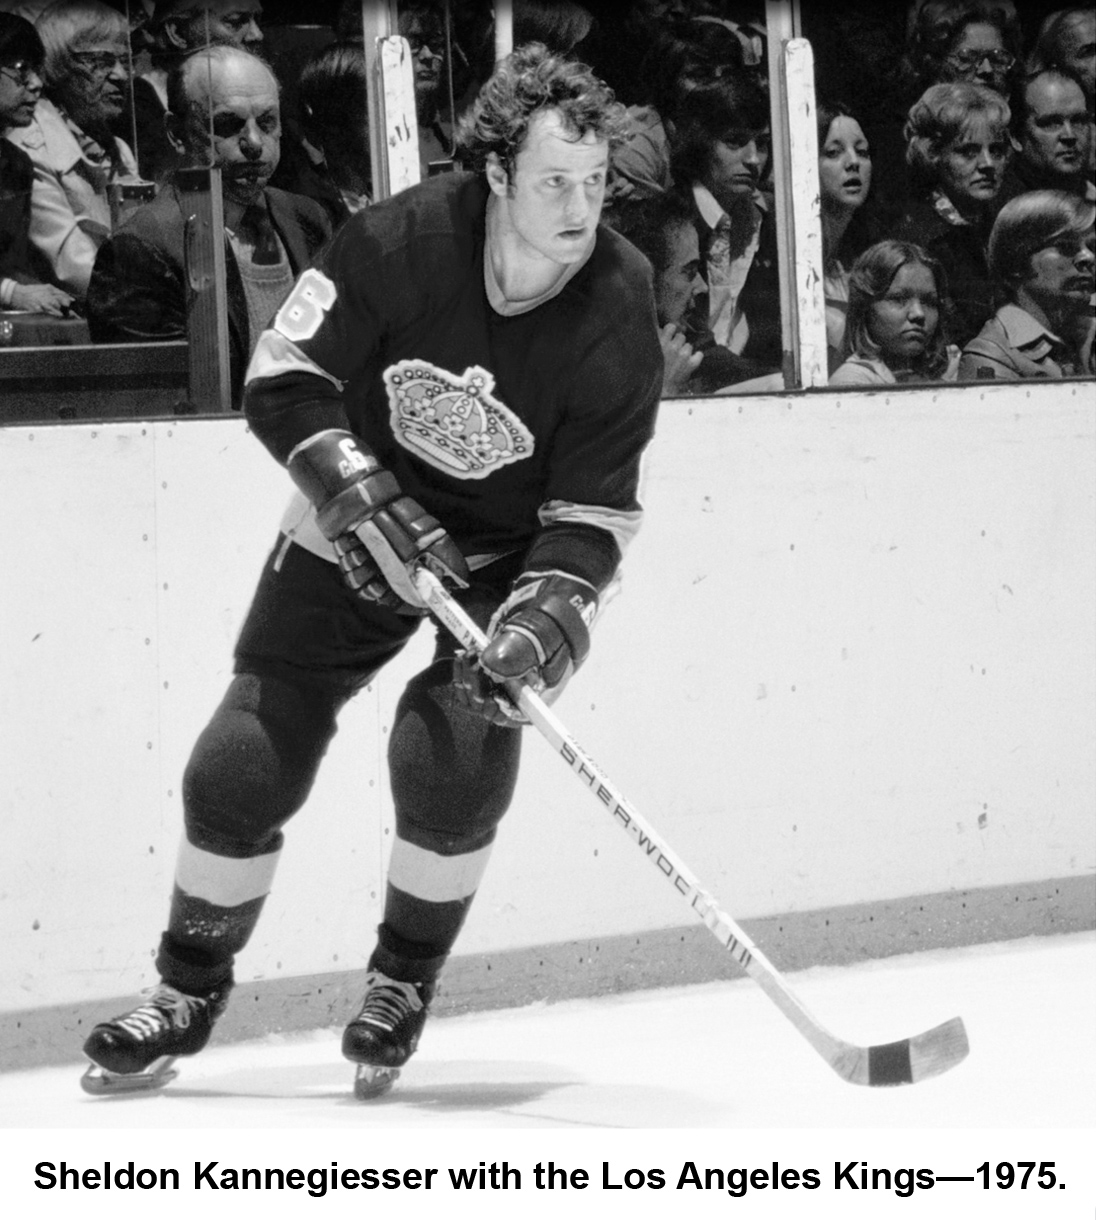 Sheldon Kannegiesser with the Los Angeles Kings — 1975.